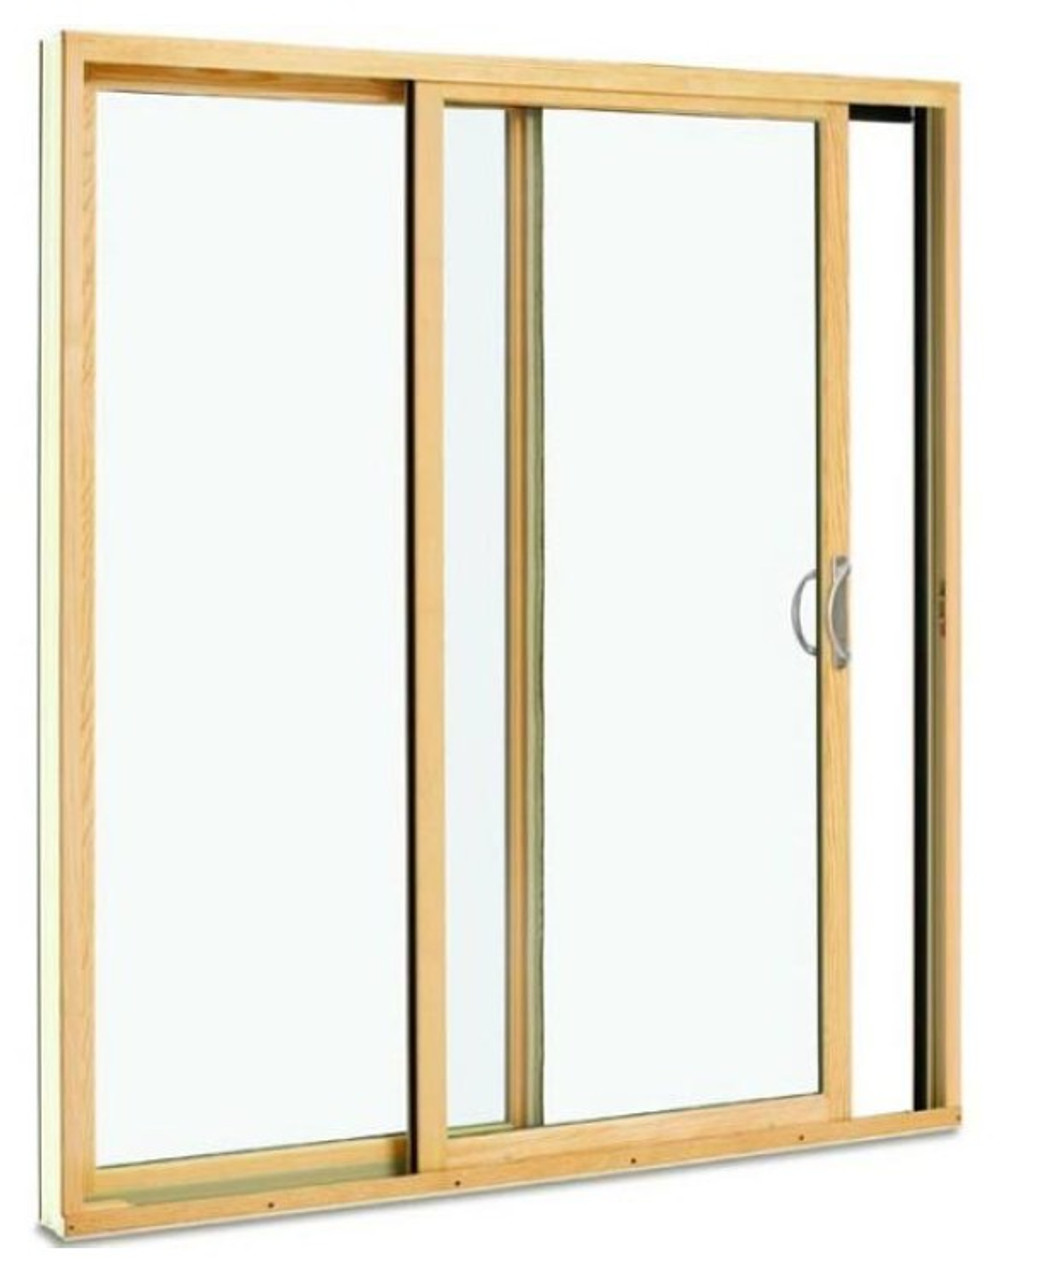 2-PANEL 6'9'' ROUGH OPENING HEIGHT (STANDARD STYLE) SLIDING DOOR / LOW-E 270 GLASS